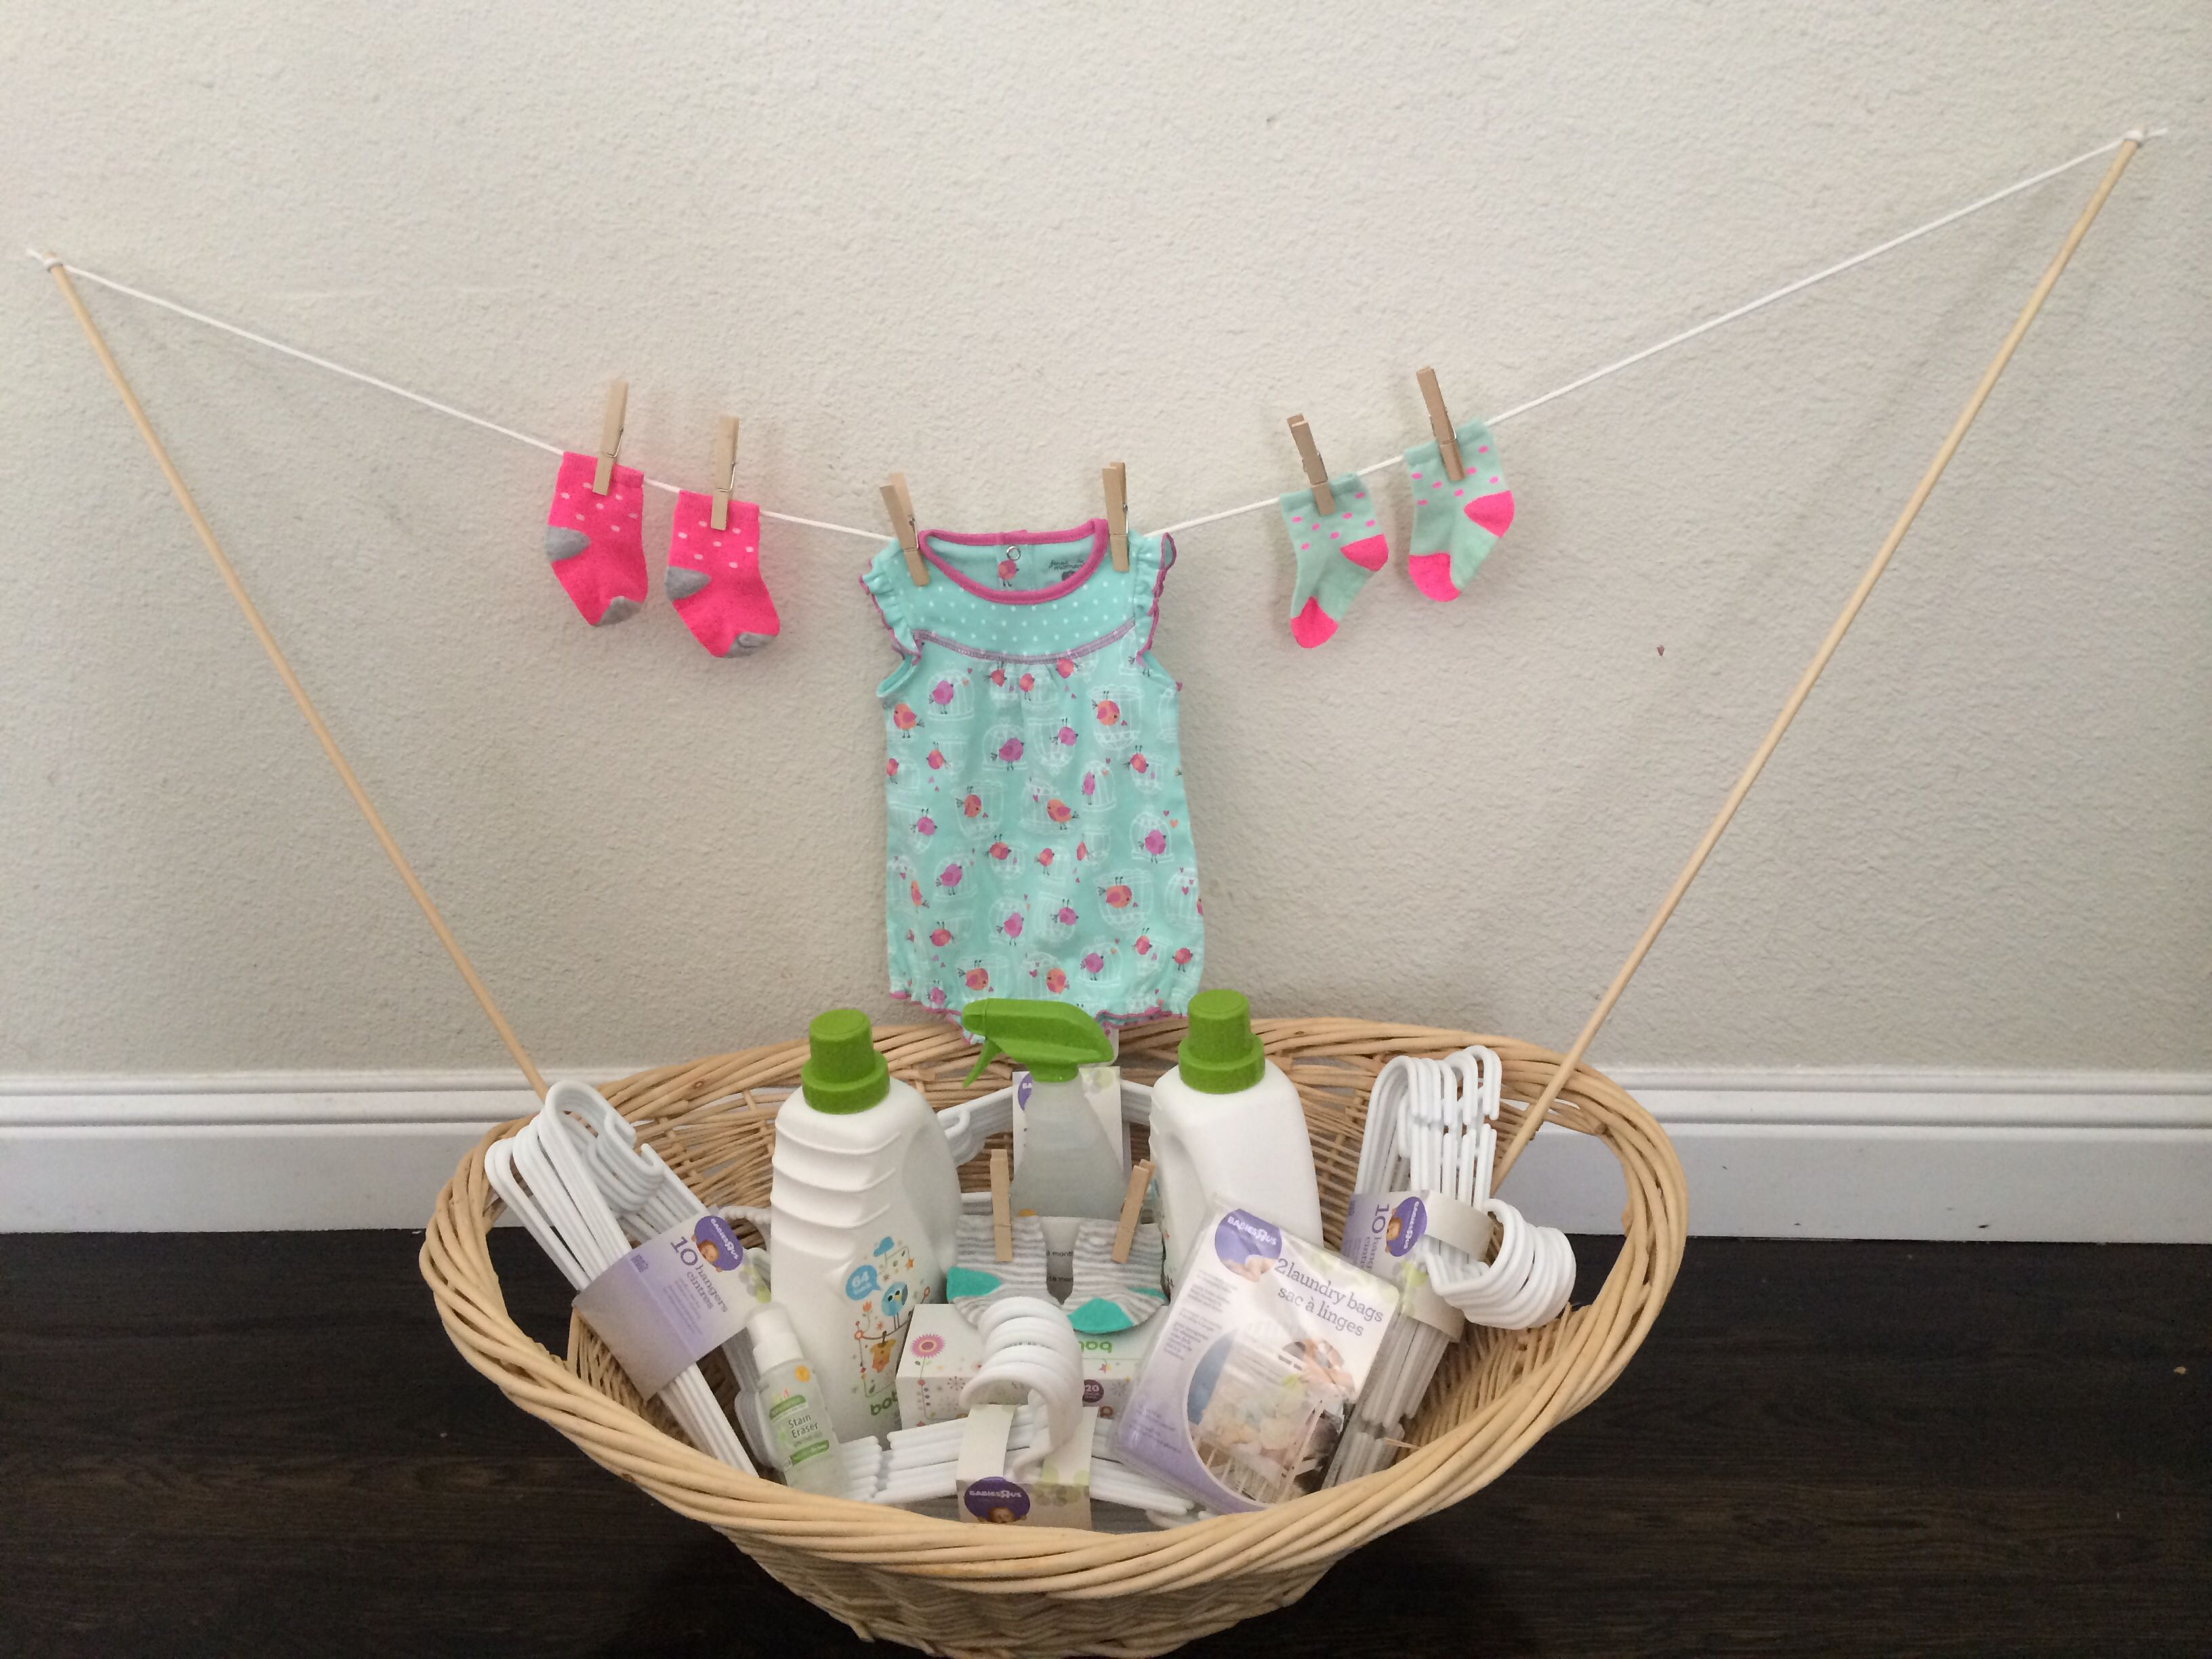 Baby Laundry Basket Gift Baby Laundry Gift Basket Gift Ideas Baby Shower Gifts